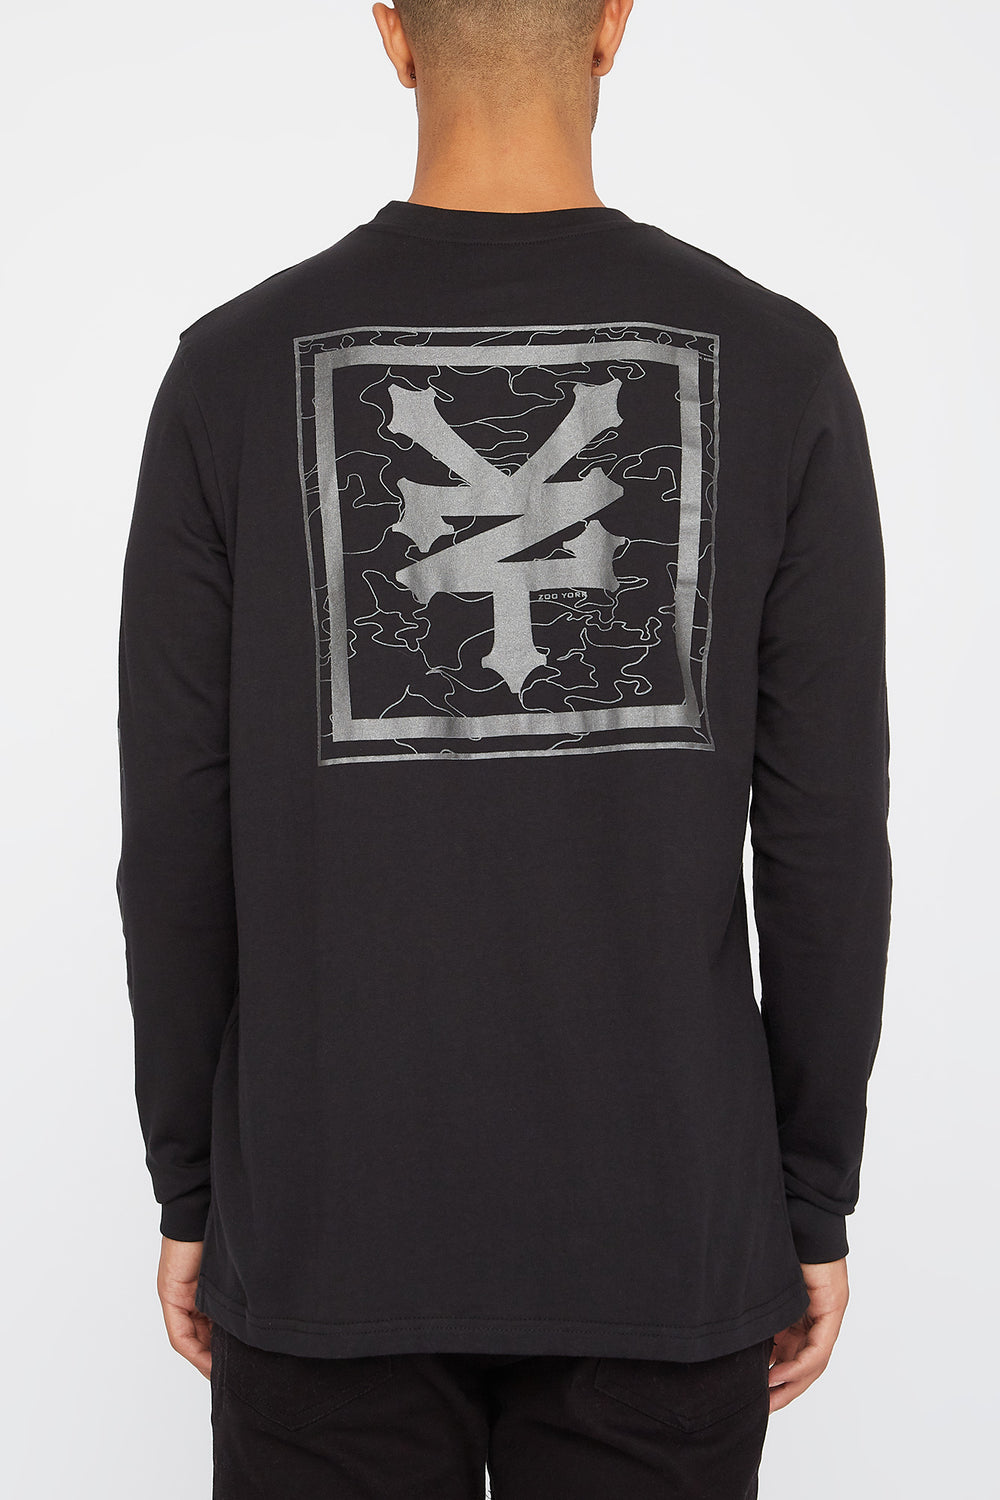 Zoo York Mens Reflective Camo Logo Long Sleeve Shirt Black